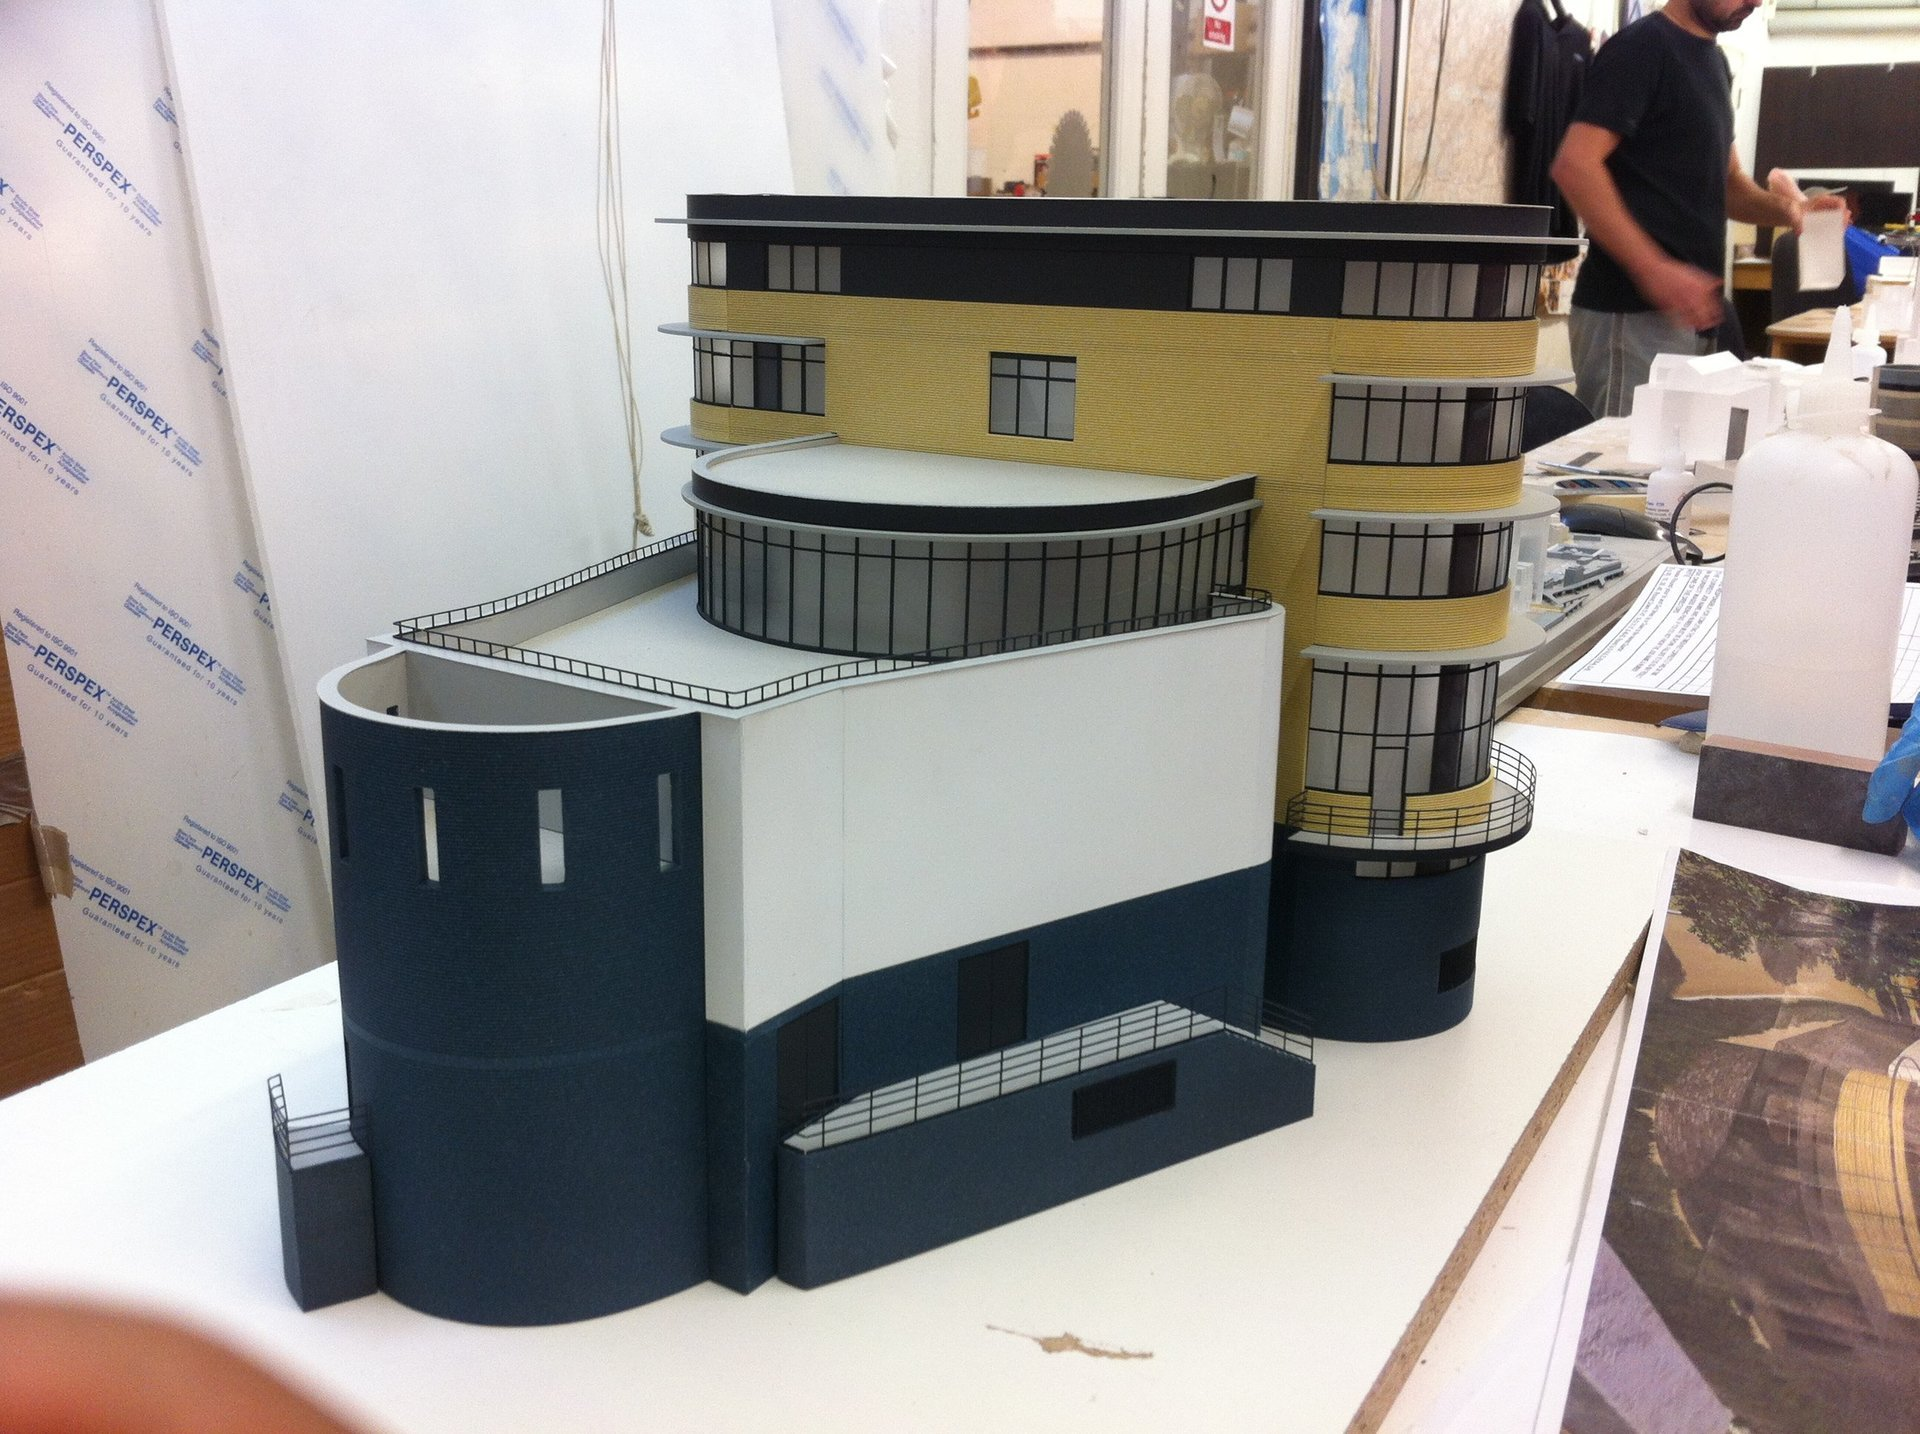 Architectural Model curved building